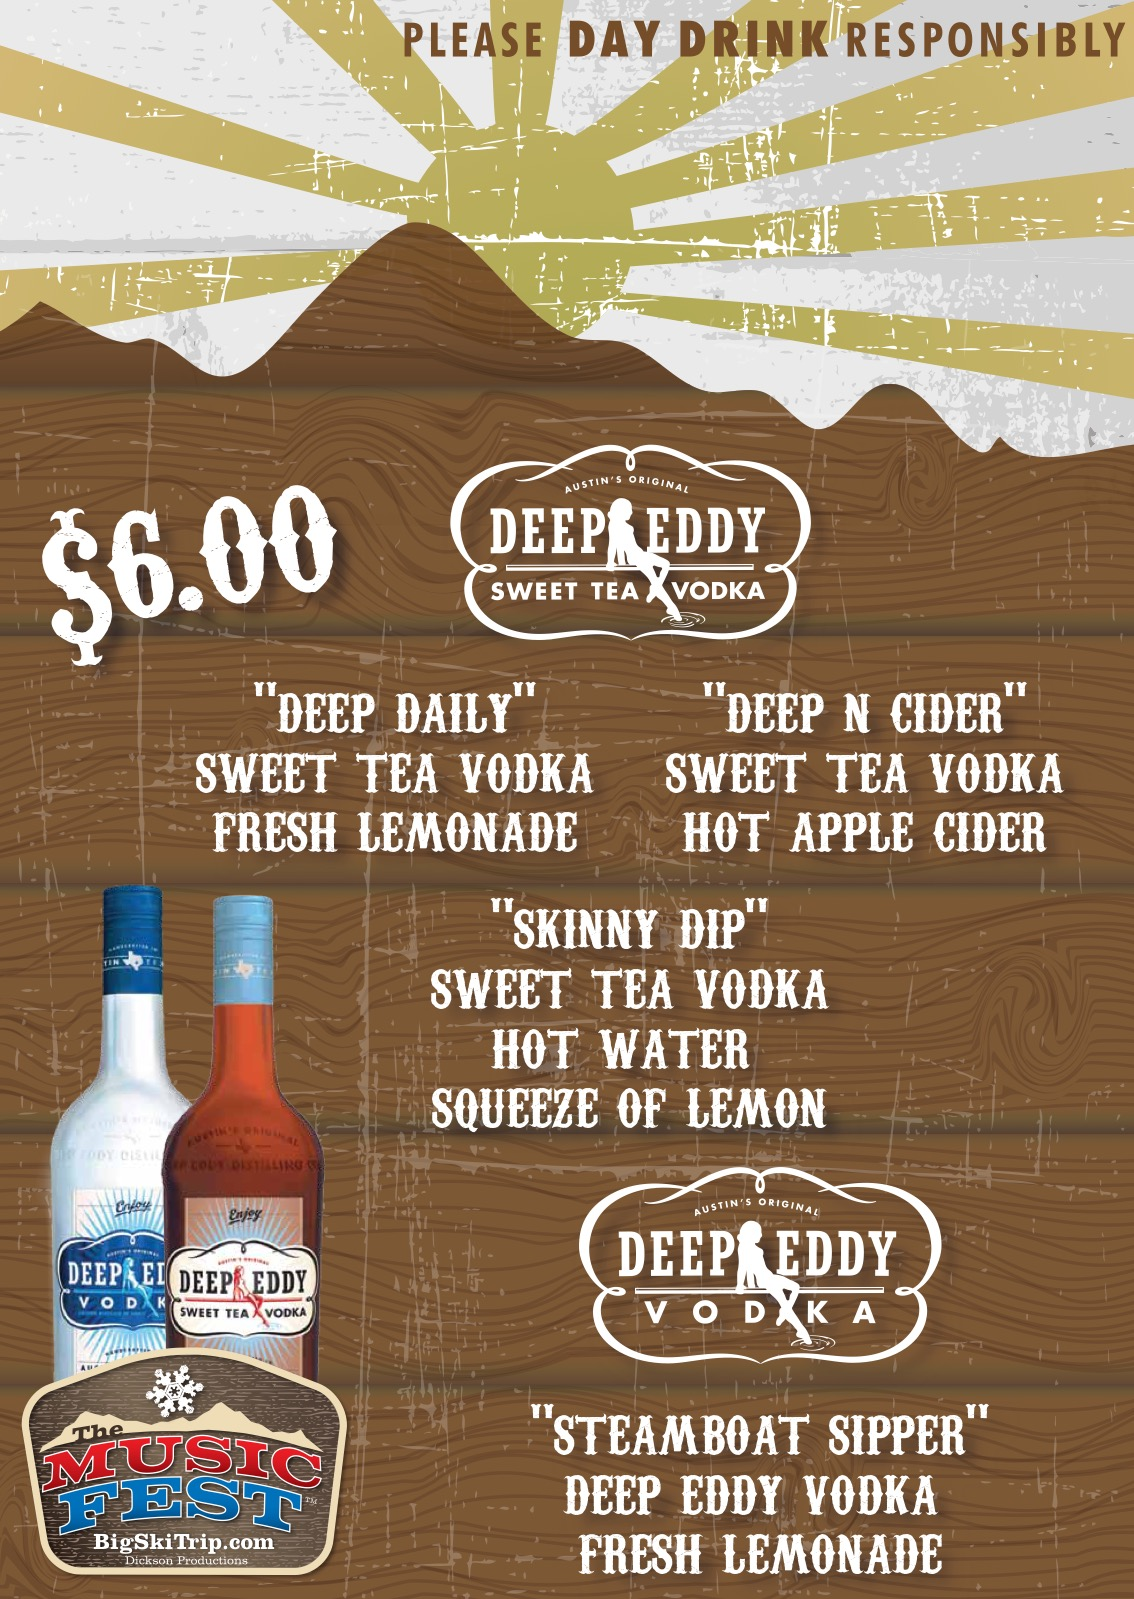 Music Fest Deep Eddy Vodka Menu 2014